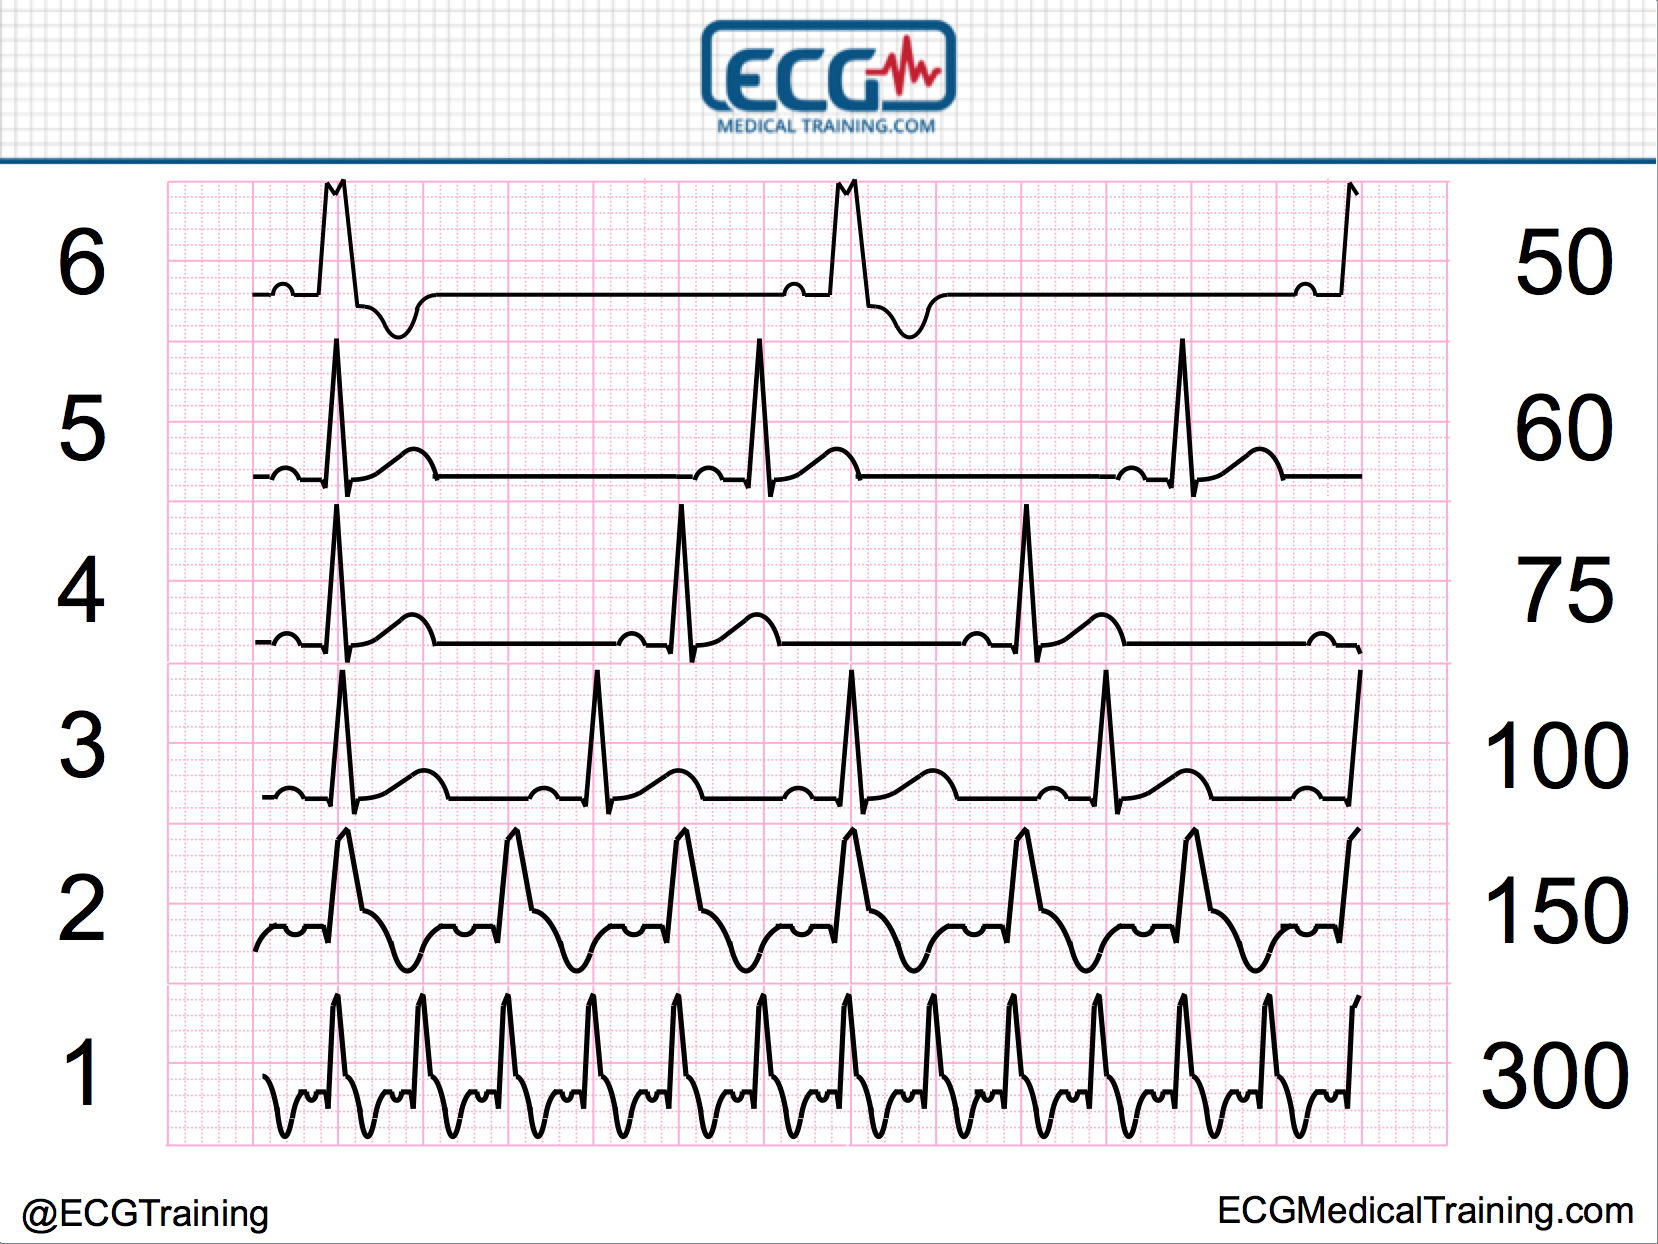 Large block method to calculate heart rate ecg medical training large block method heart rate ccuart Image collections